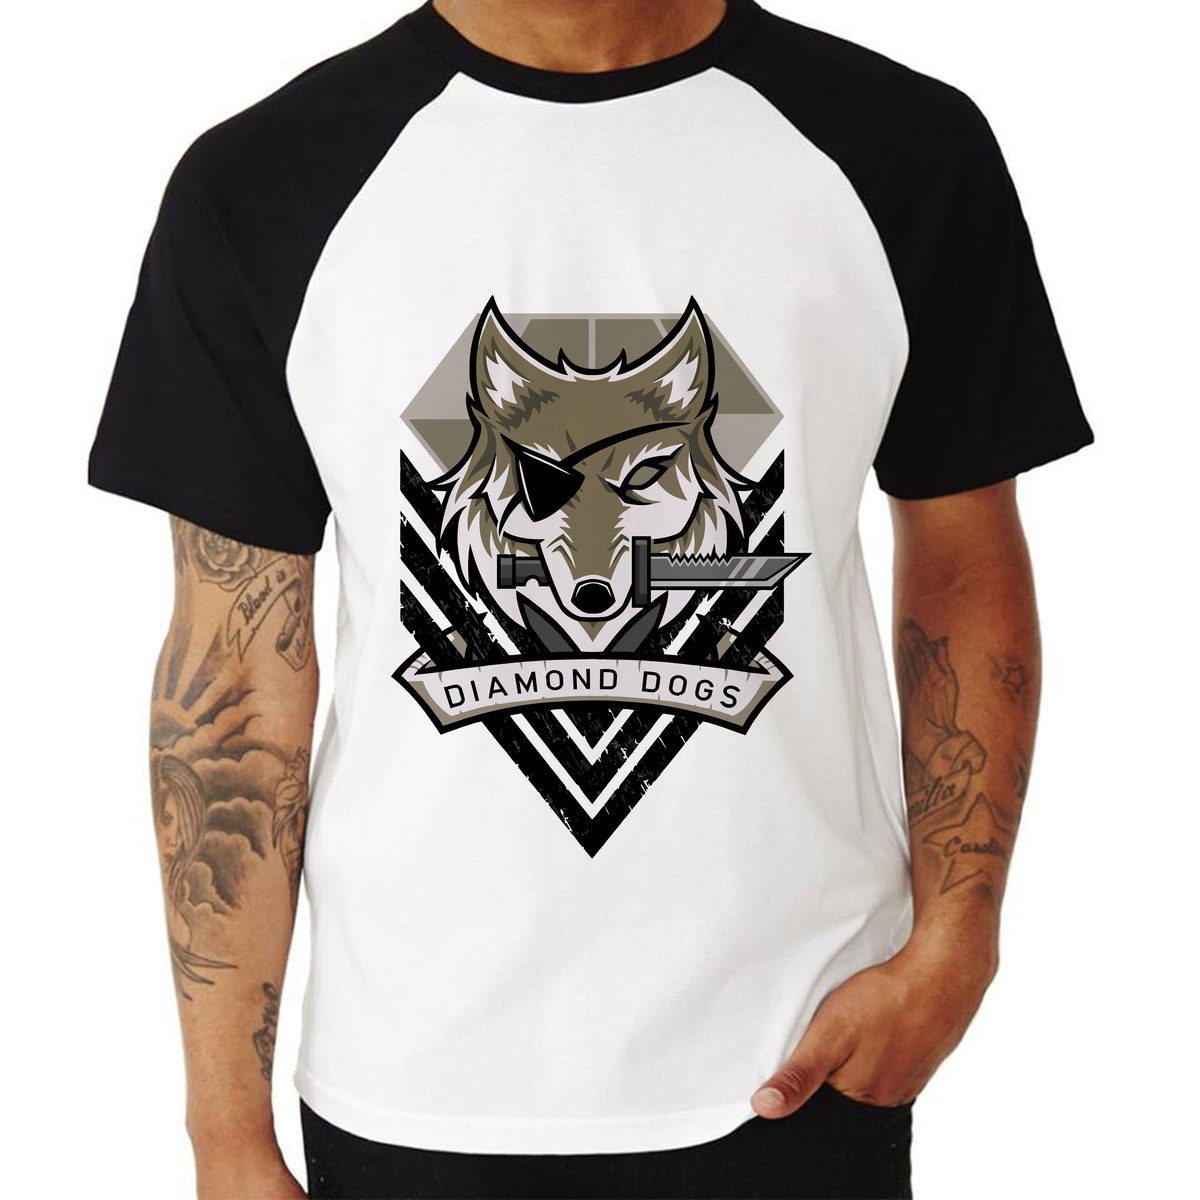 9c13ad4adea38 Camisa Raglan Metal Gear Solid V Diamond Dogs Manga Curta no Elo7 ...